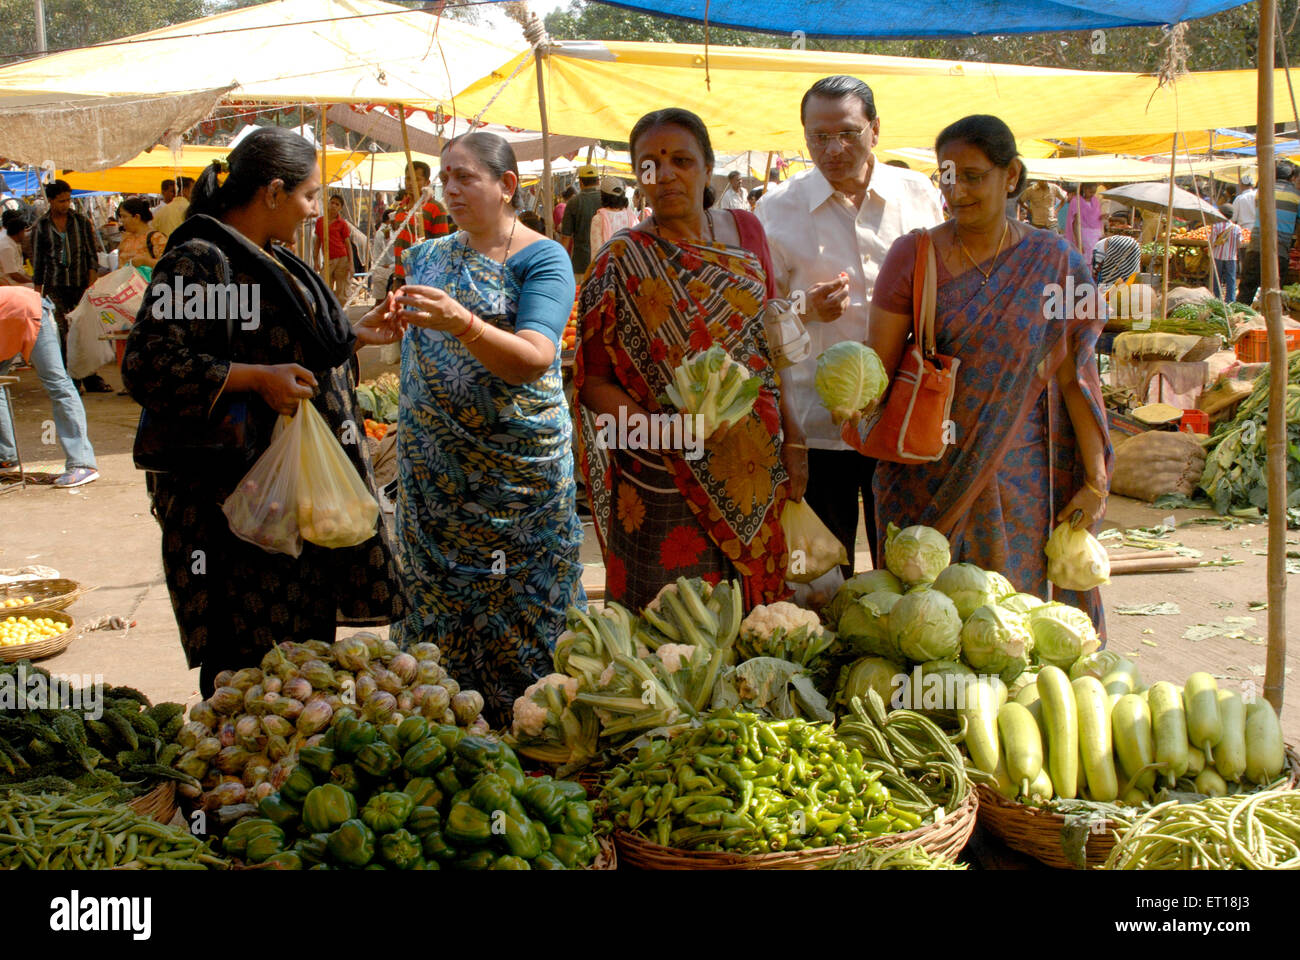 Women purchasing vegetable from market ; Devlali ; Maharashtra ; India MR# 364 - Stock Image